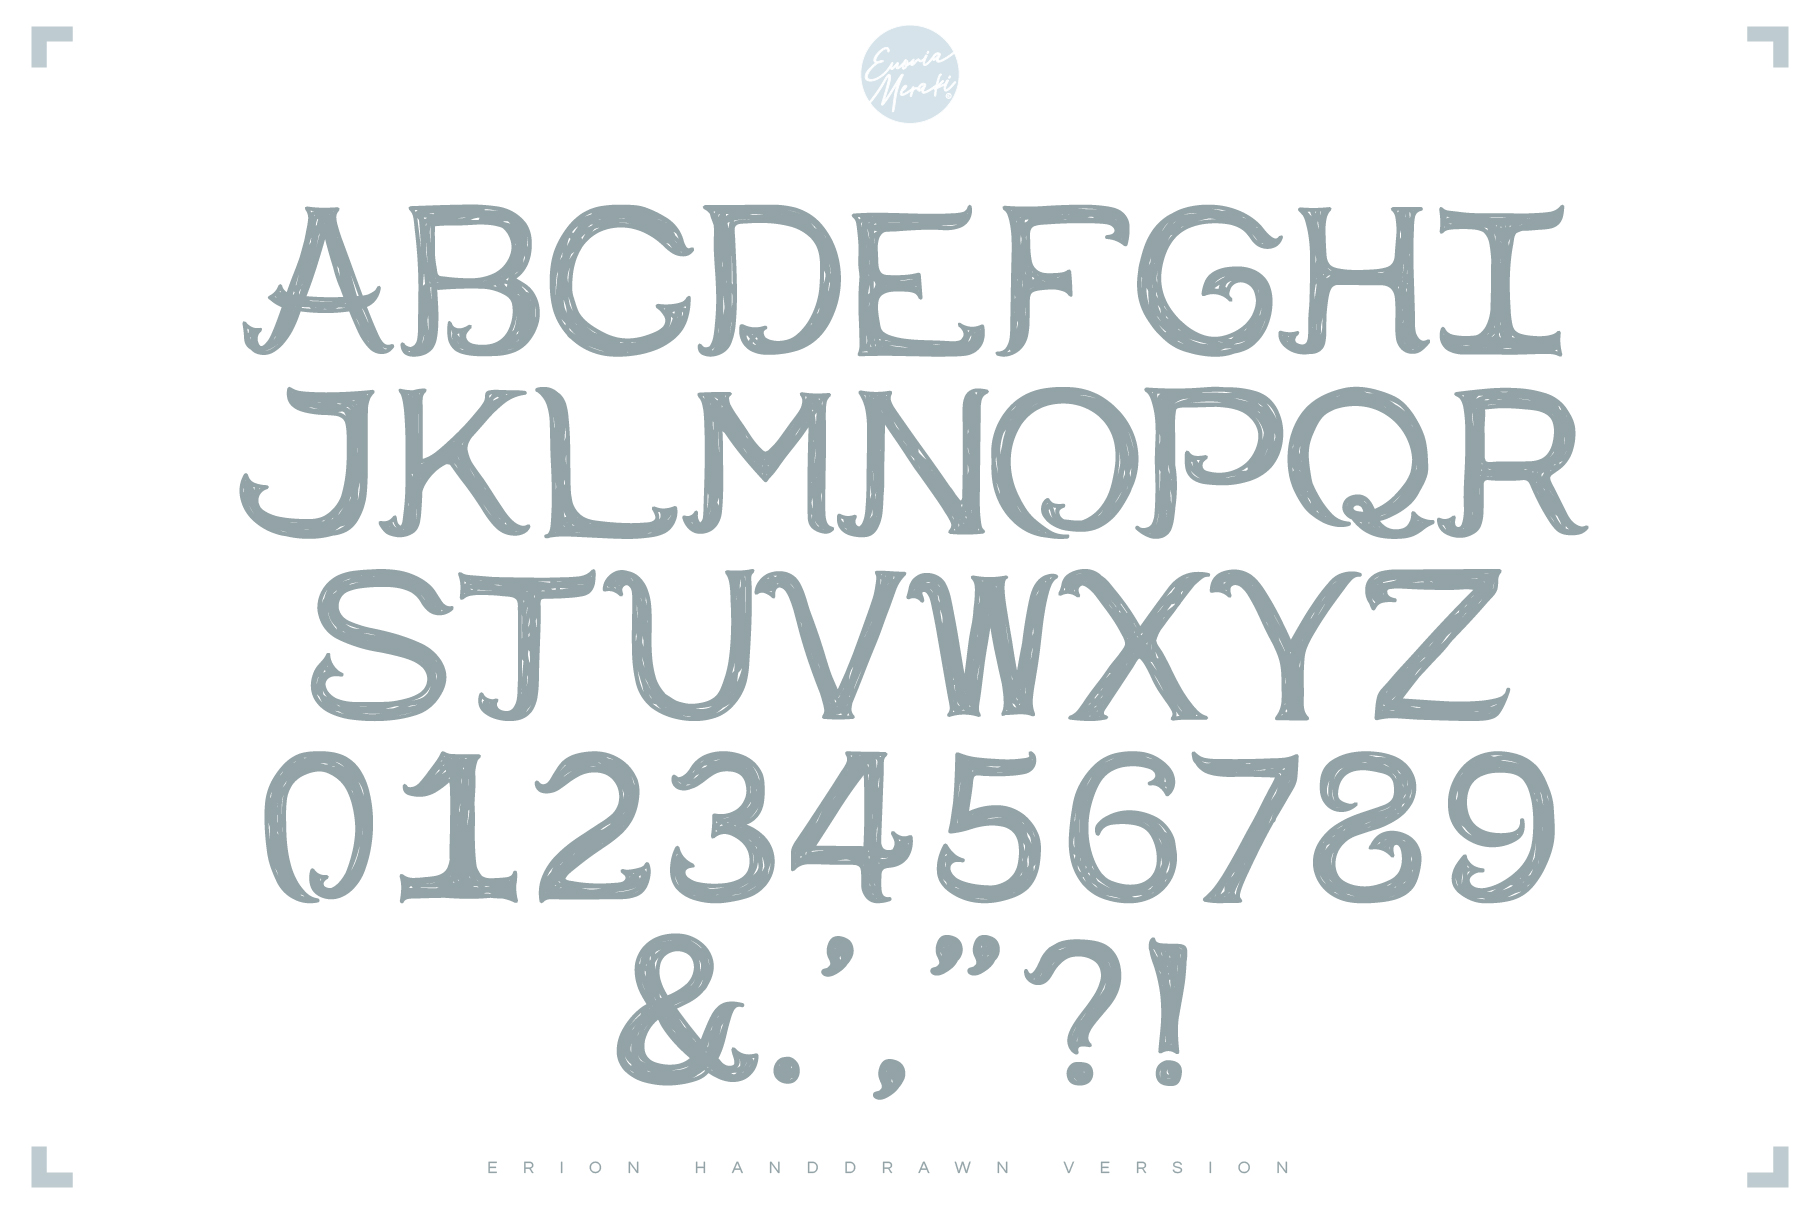 4in1 ERION FONT - Christmas Winter Version example image 2